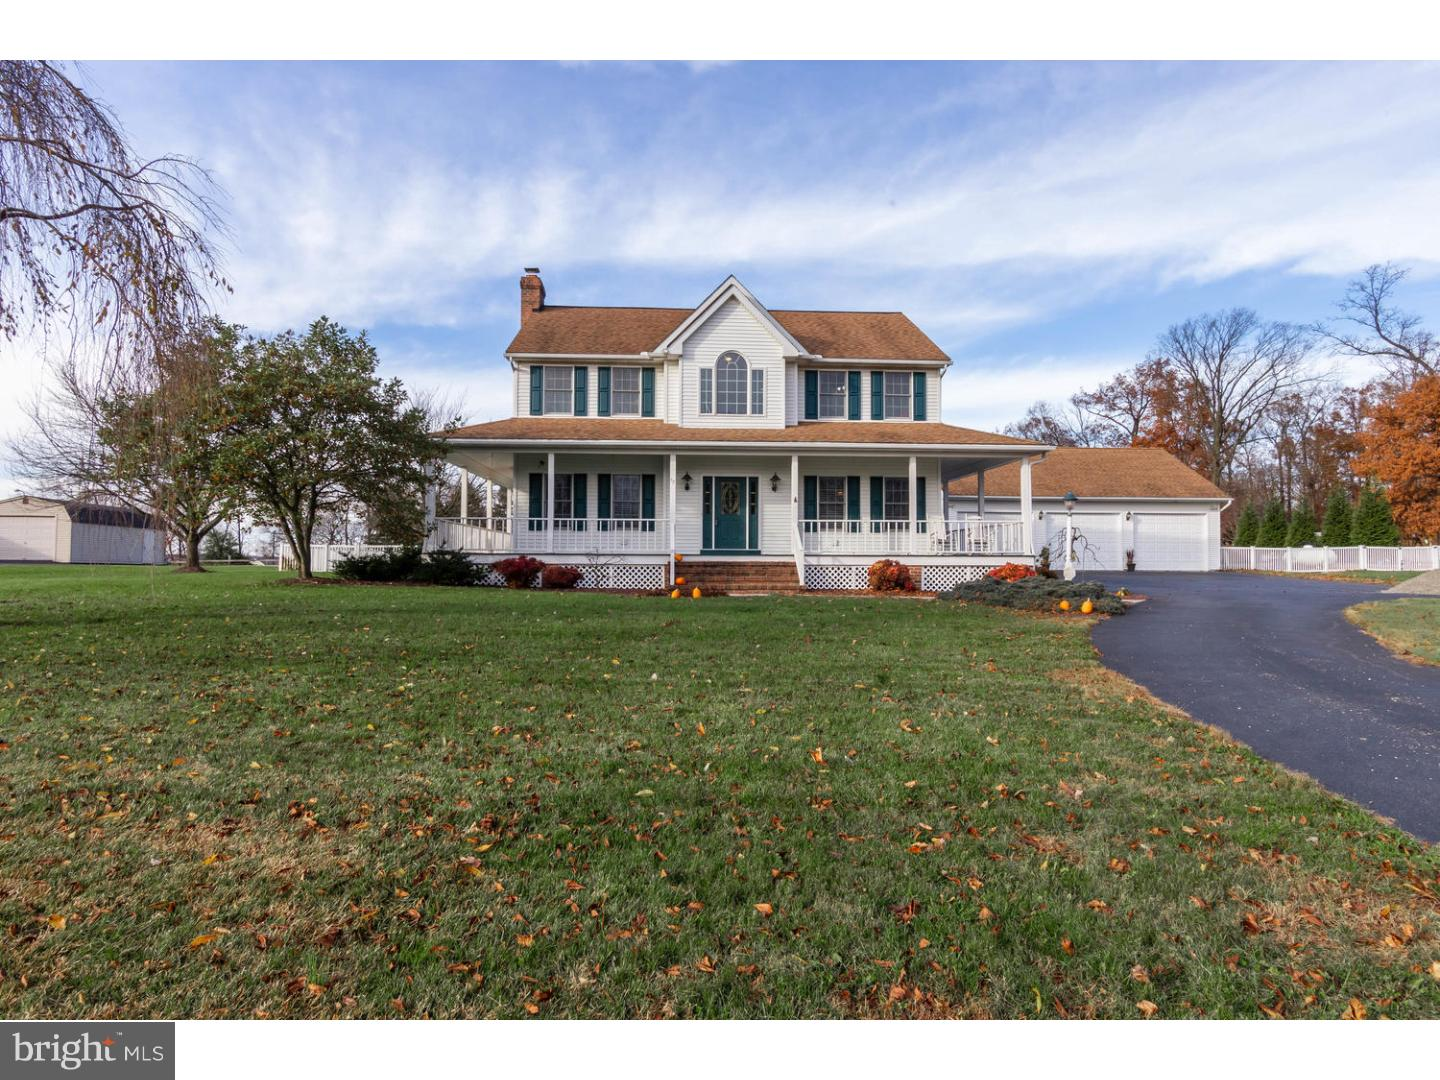 57 Upper Valley Rd, Christiana, PA, 17509